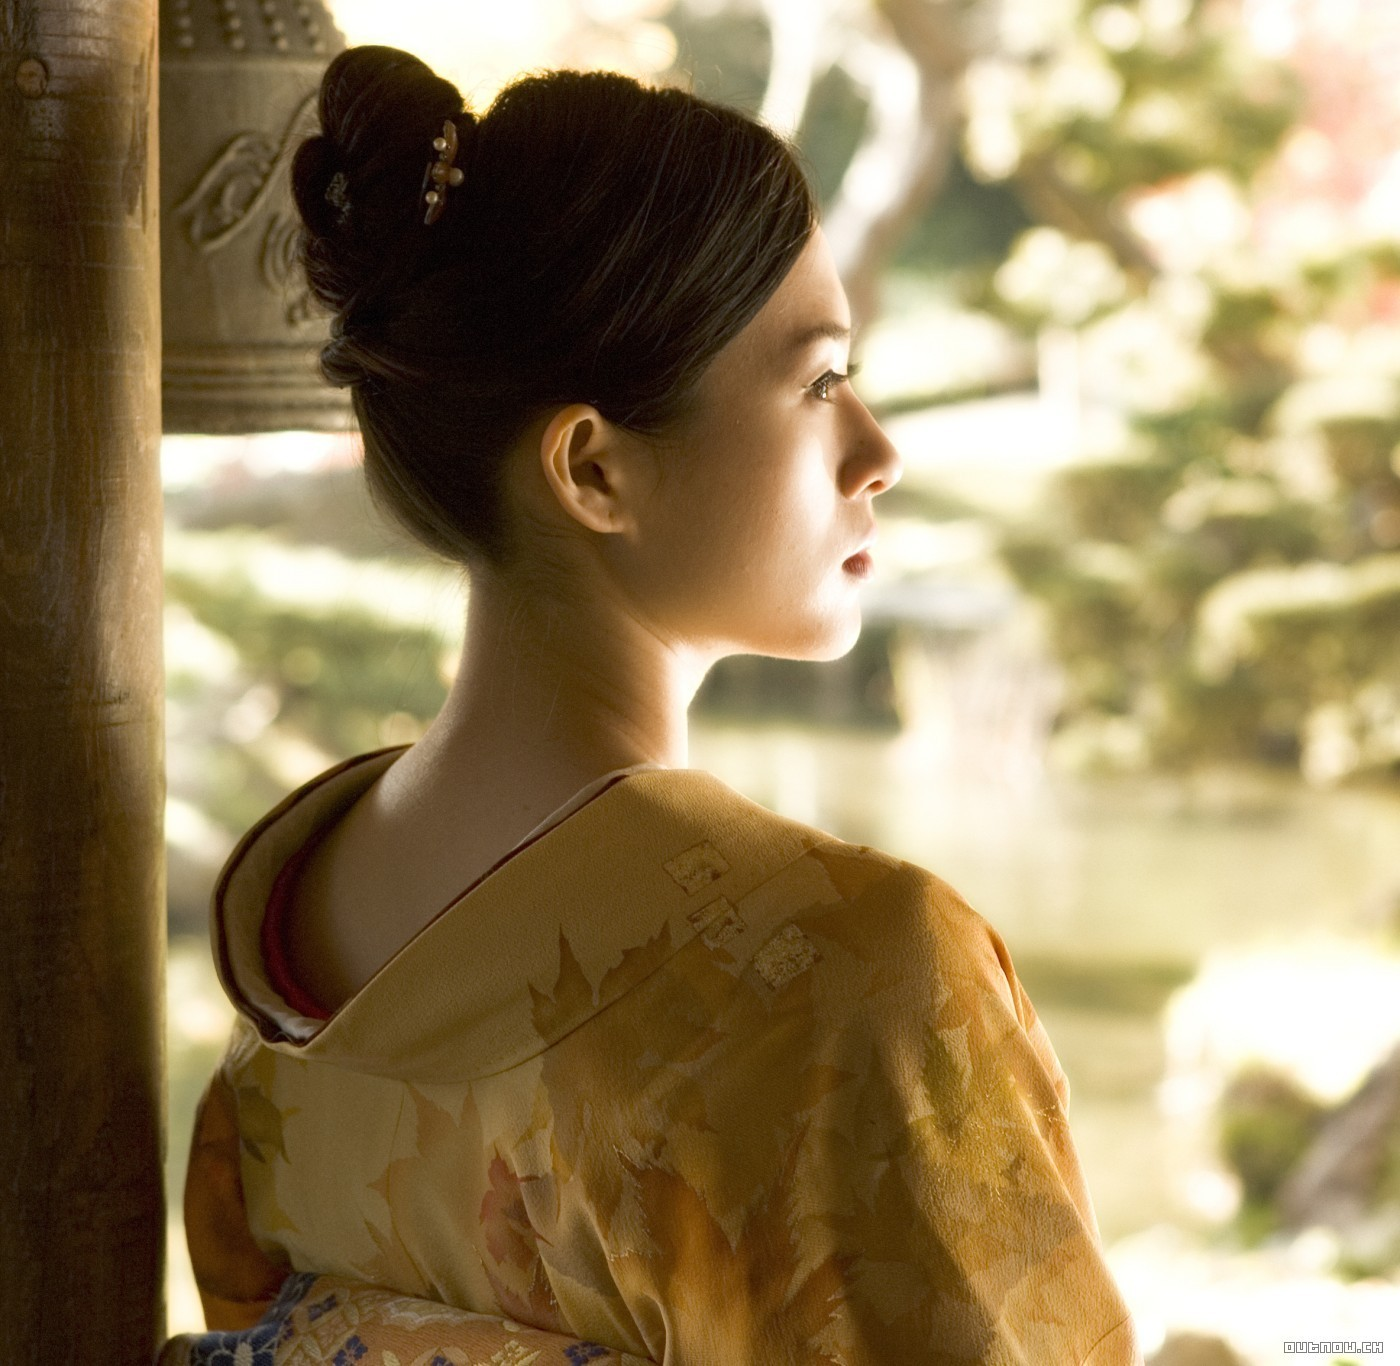 memoirs of a geisha Watch online full movie: memoirs of a geisha (2005), for free nitta sayuri reveals how she transcended her fishing-village roots and became one of japan's most celebrated geisha stream movies.